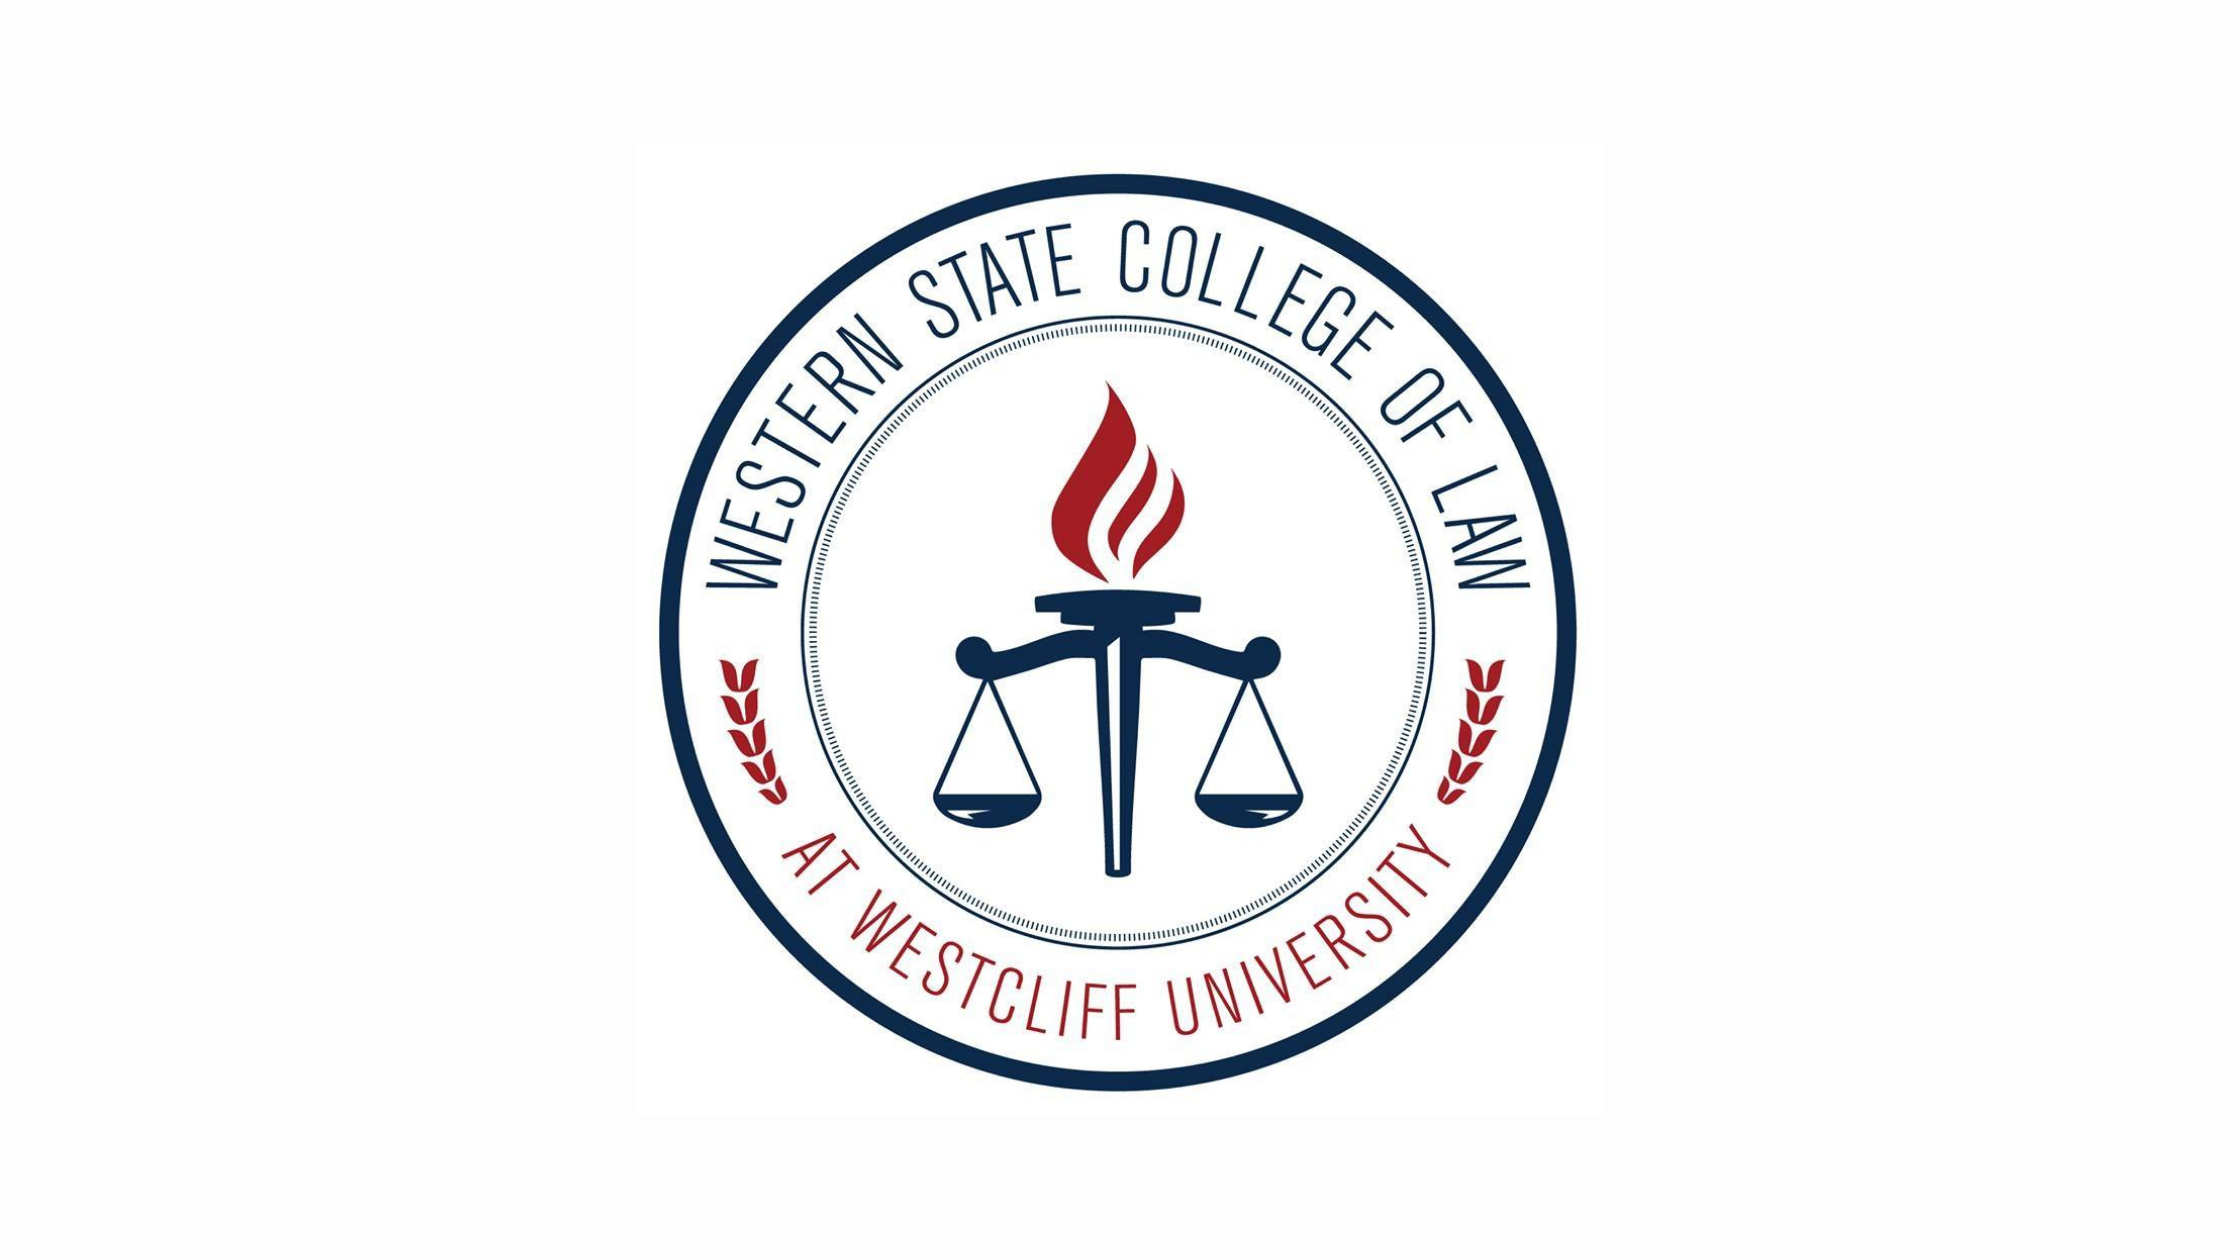 Westcliff University Finalizes Acquisition of Western State College of Law